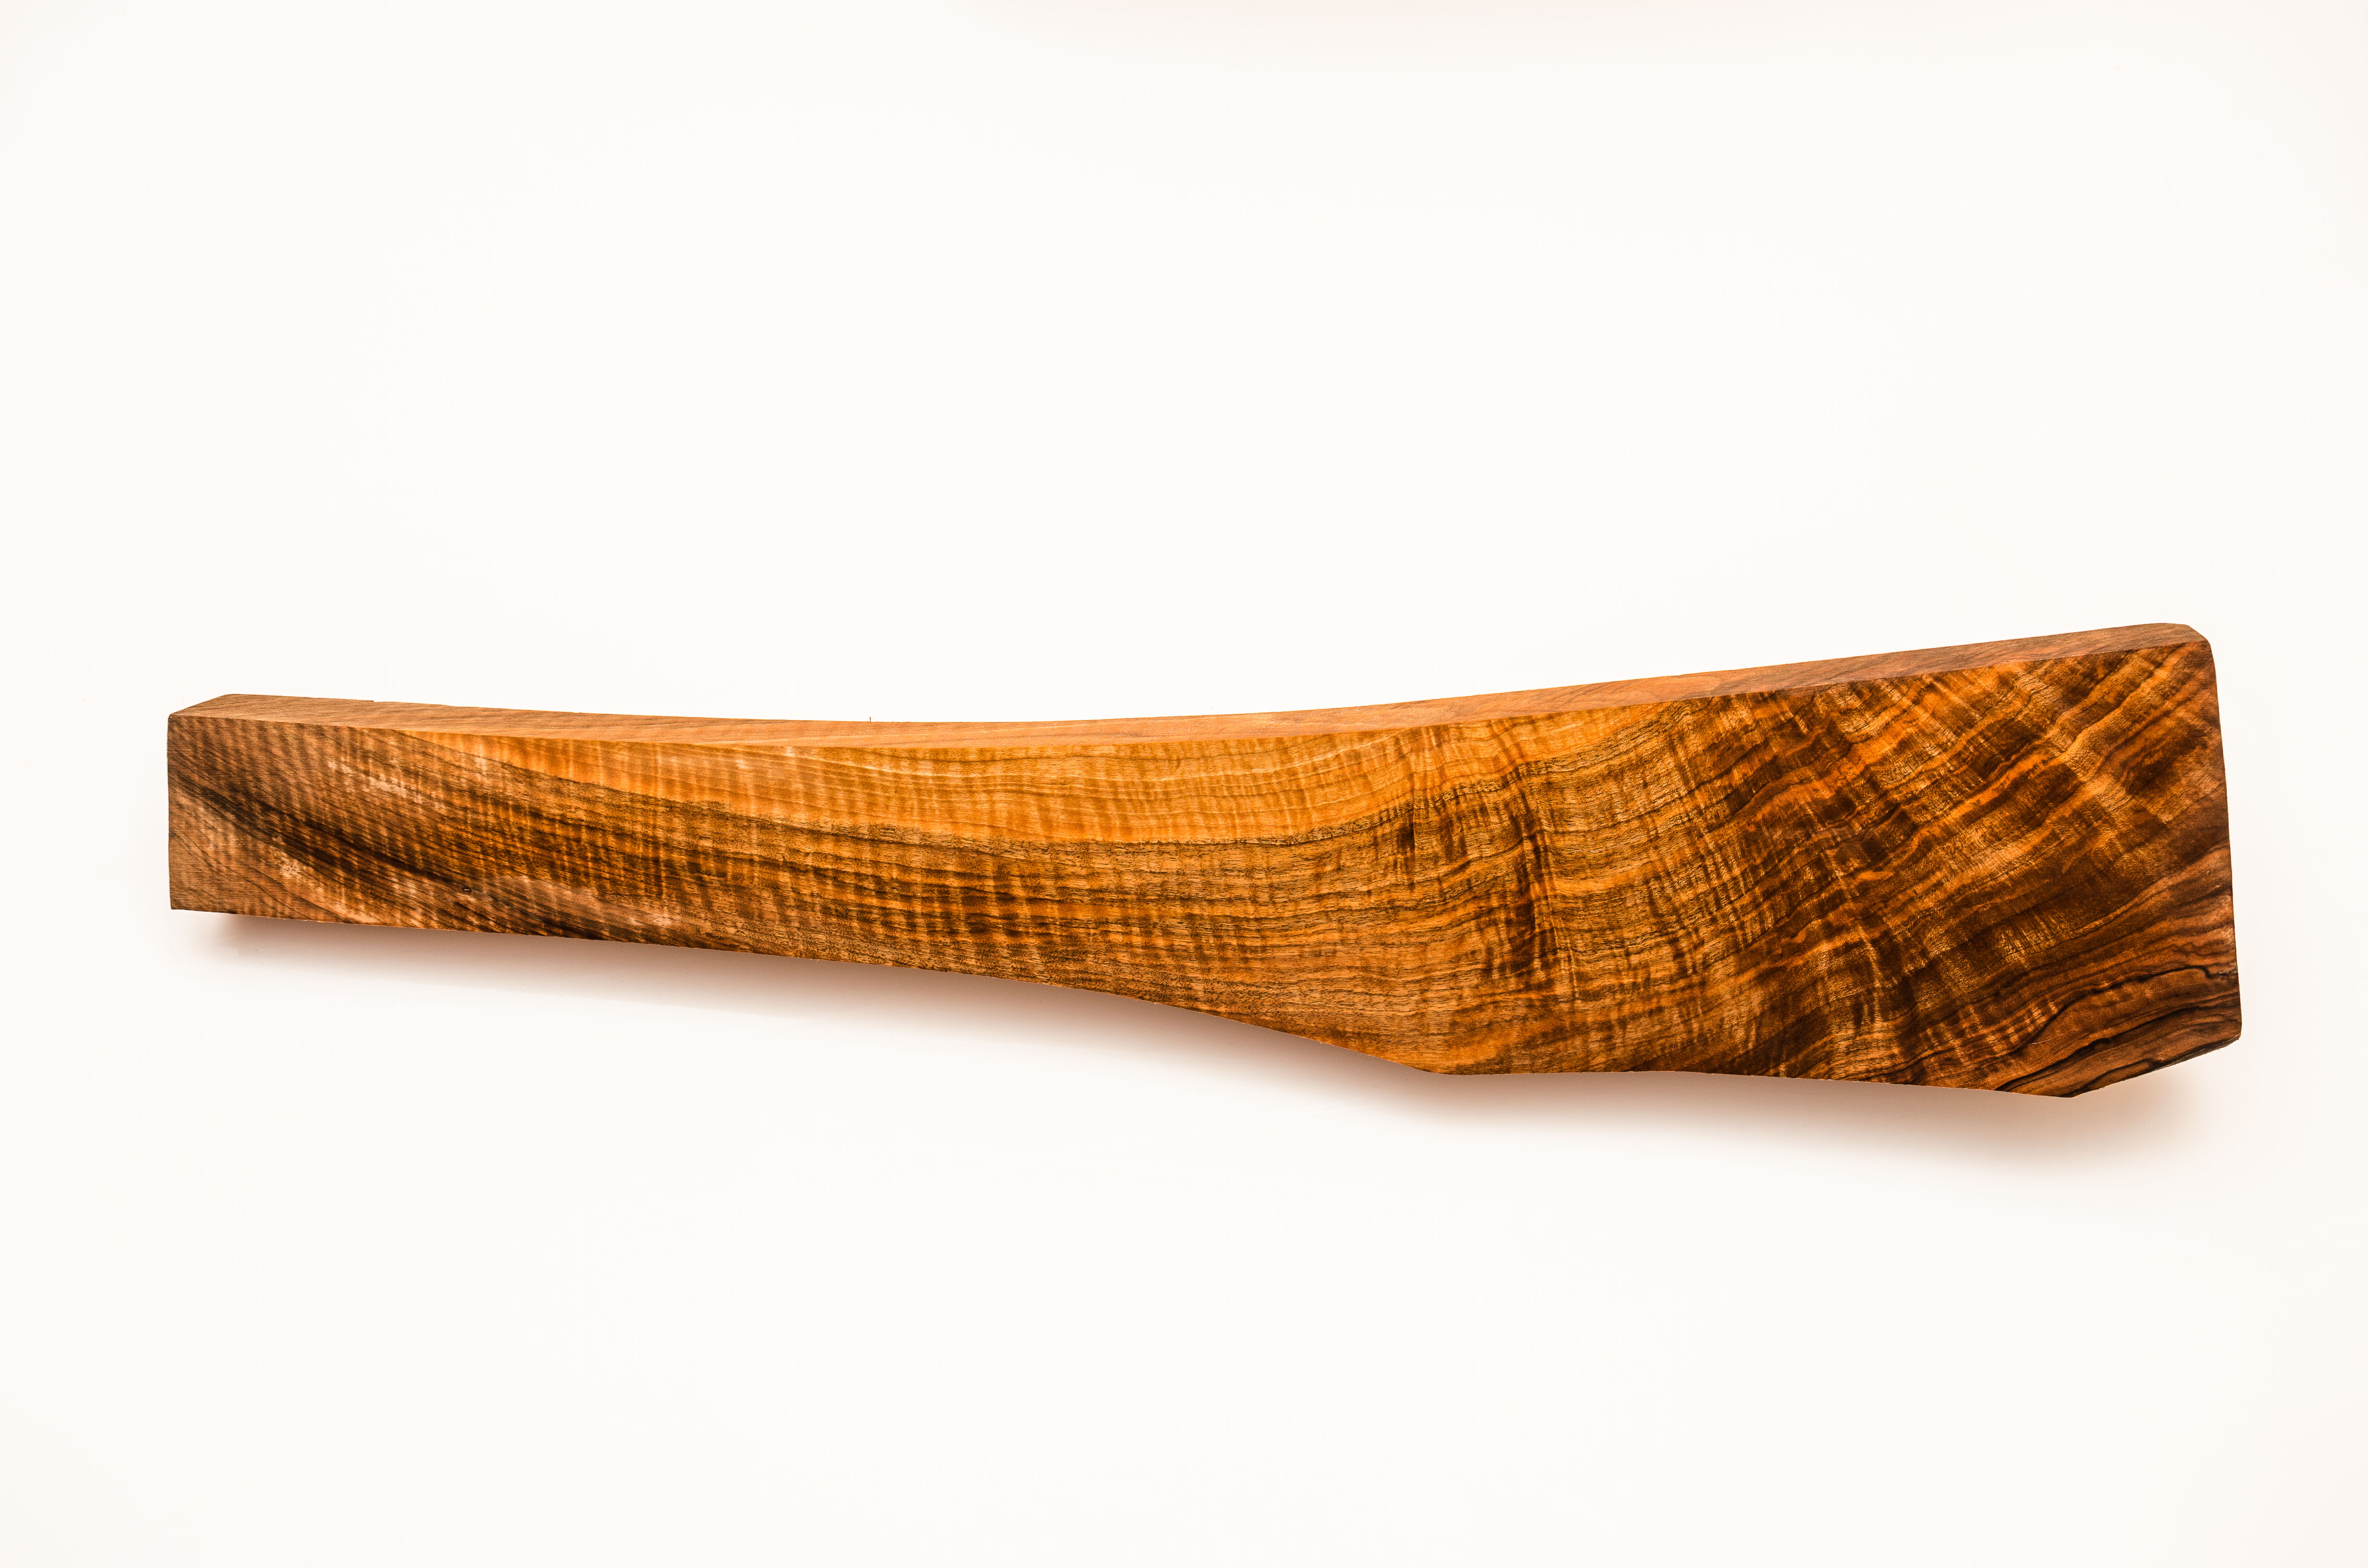 walnut_stock_blanks_for_guns_and_rifles-1486